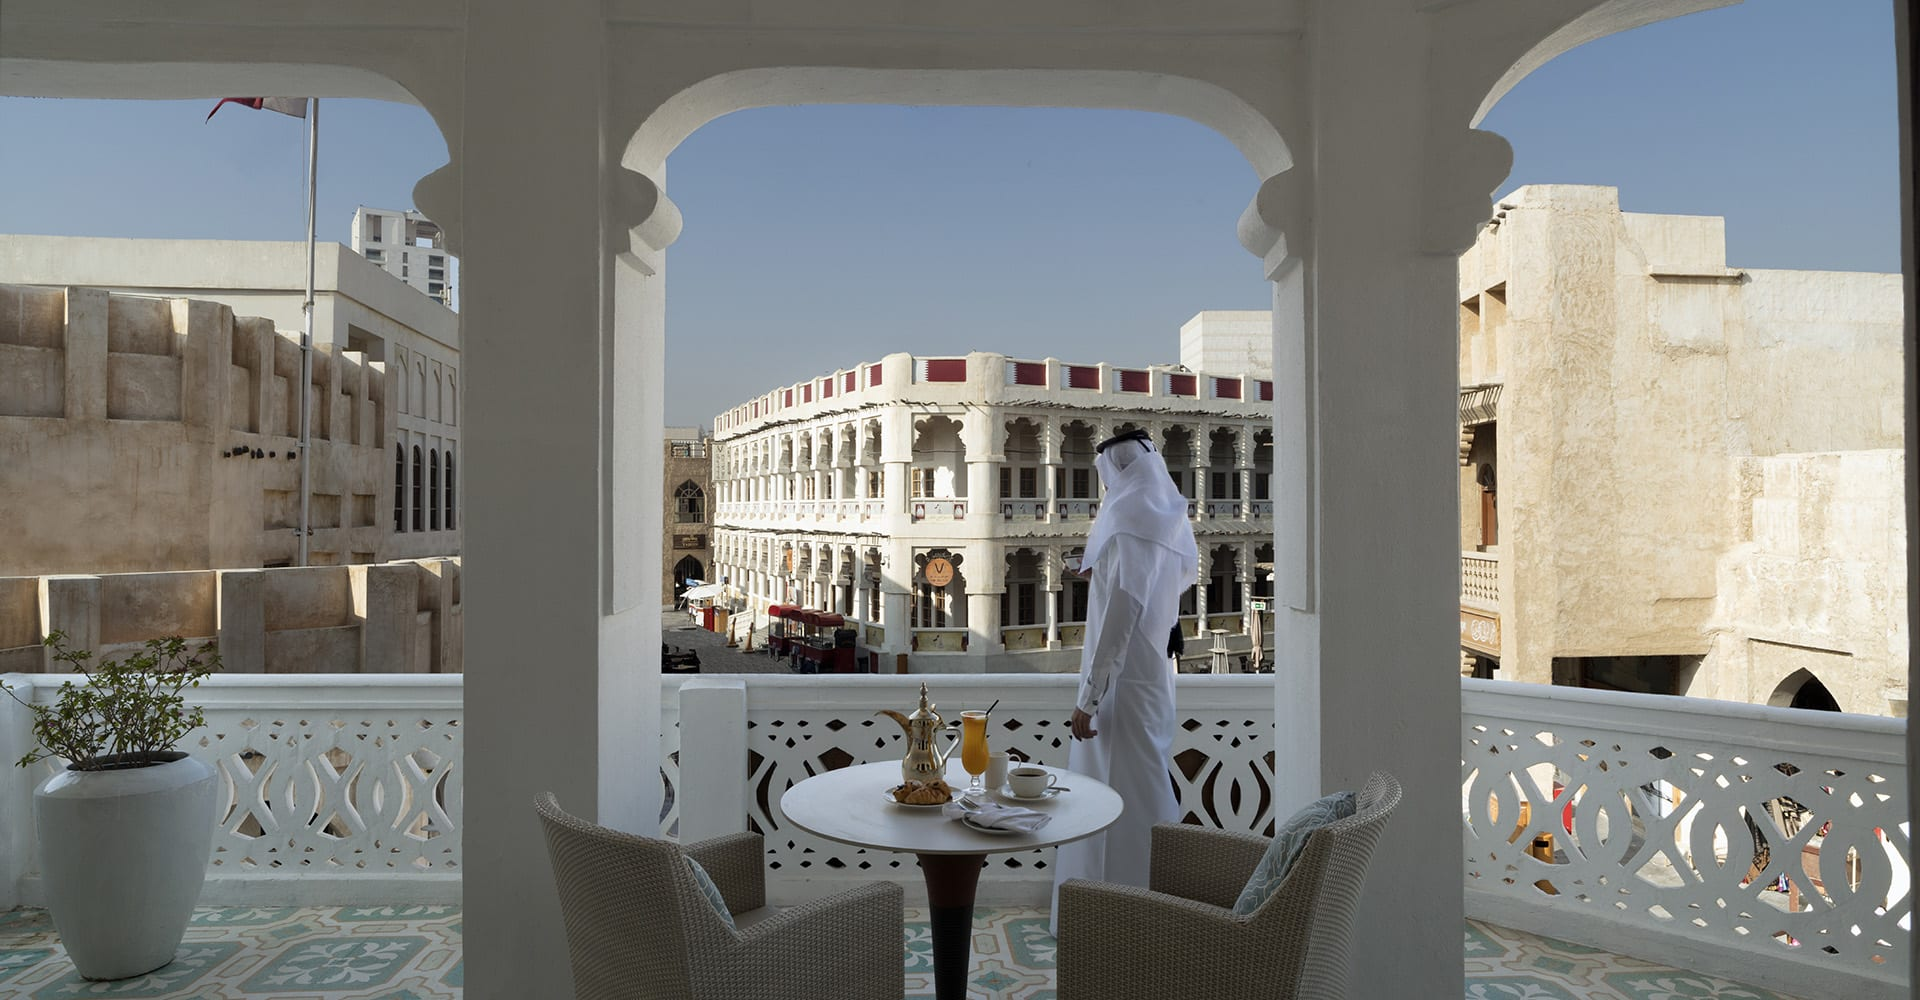 Hotels in Doha | Souq Waqif Boutique Hotels | Qatar